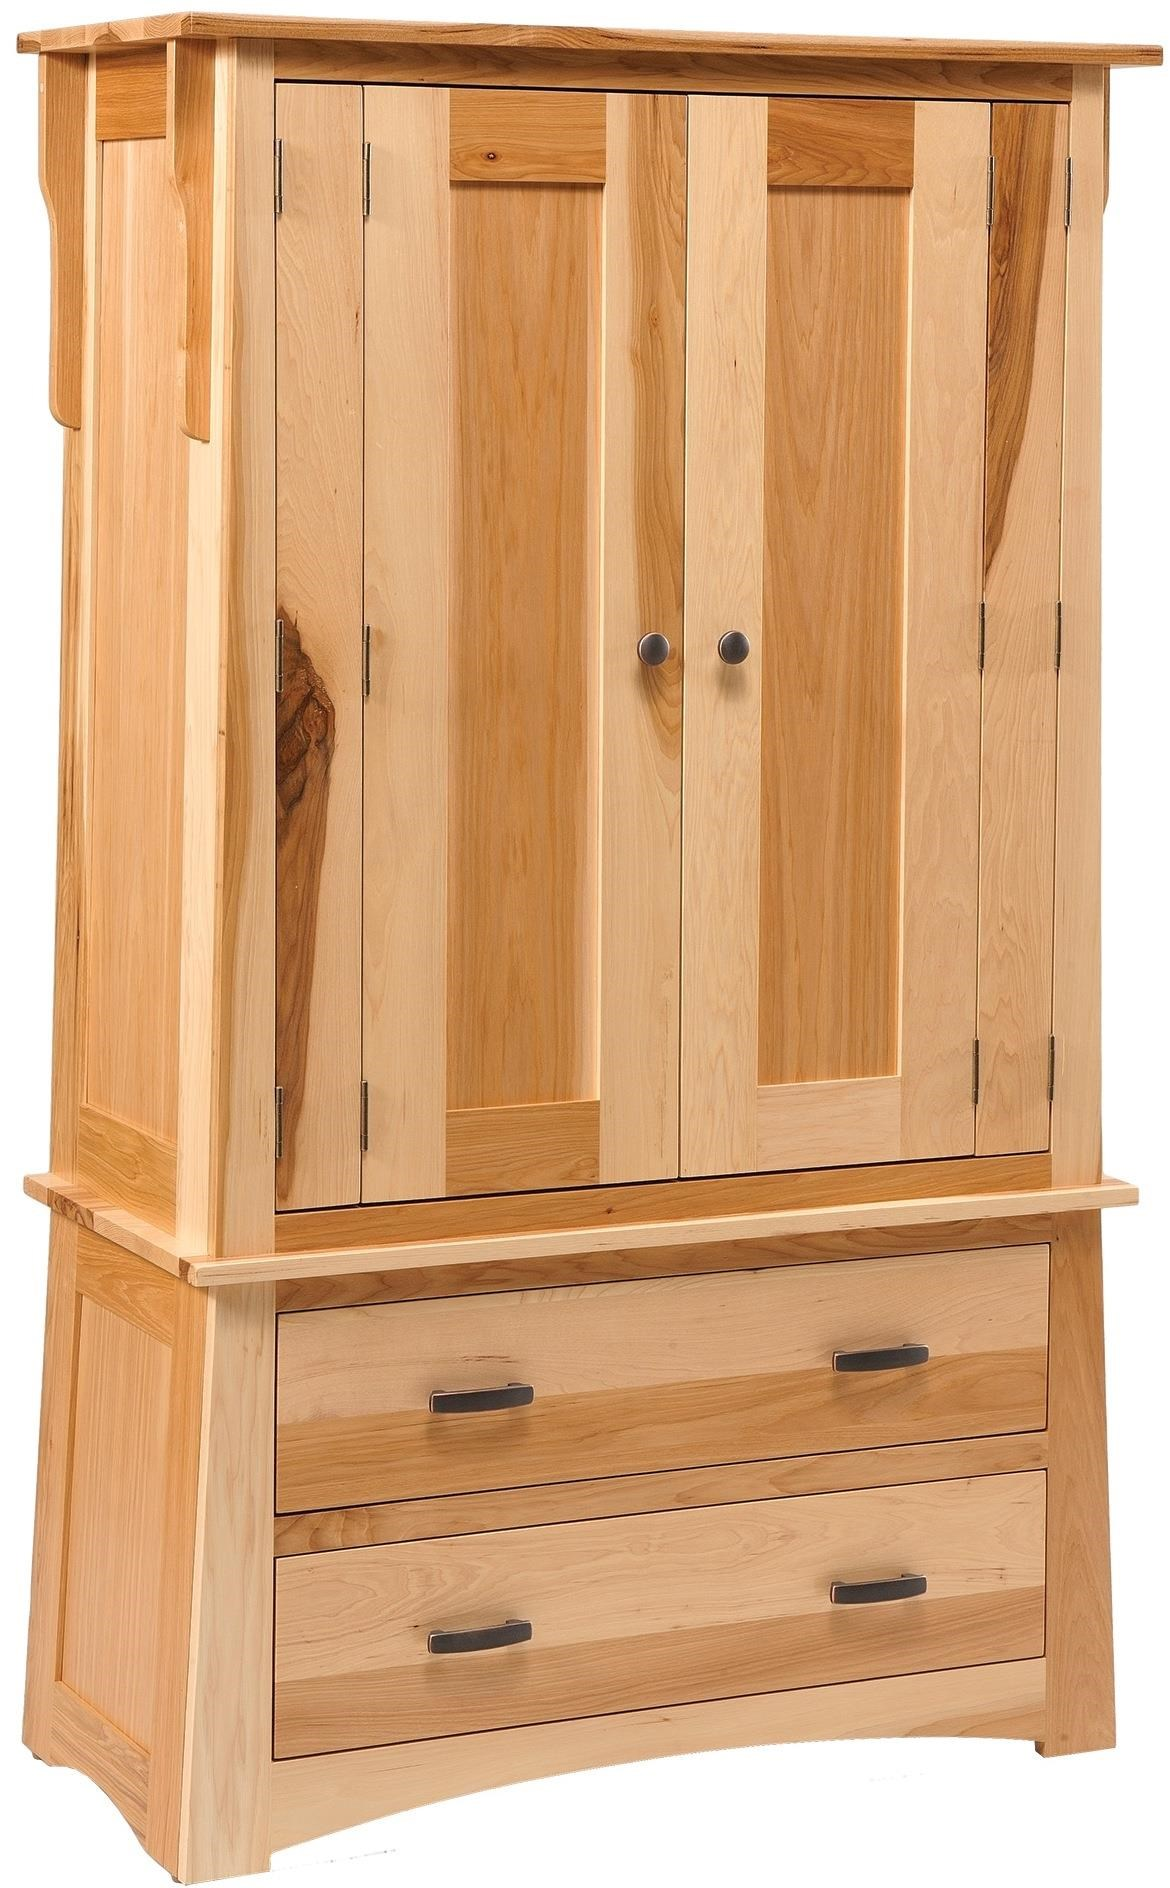 Danielu0027s Amish Arts And Crafts 2  Drawer Armoire With 2 Doors And Wardrobe  Pole